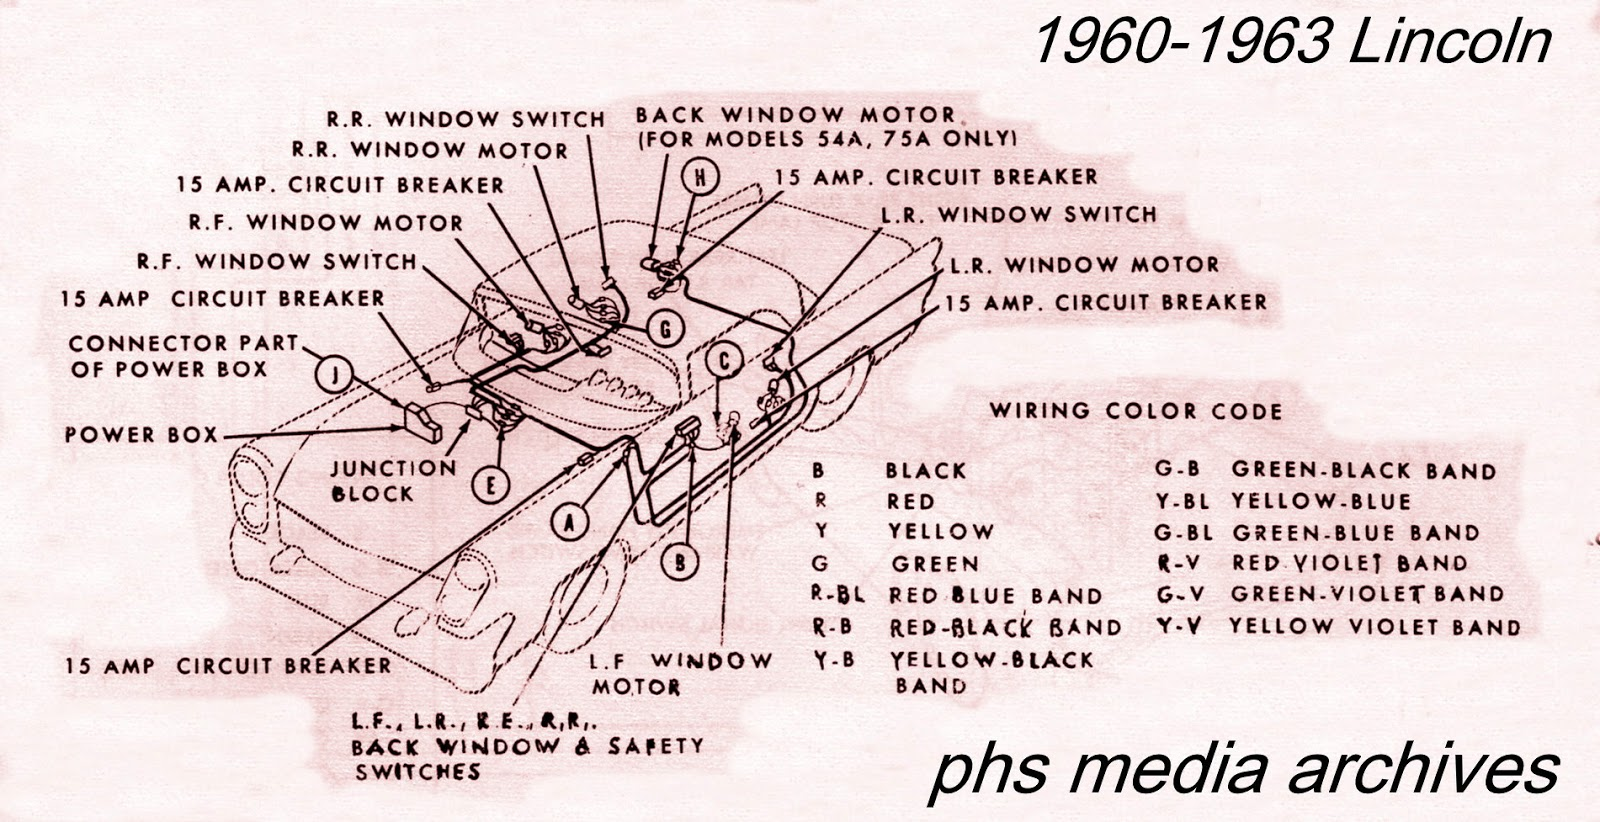 1960 Lincoln Wiring Diagram Schematics Diagrams Tech Series 1964 Phscollectorcarworld Rh Blogspot Com 1965